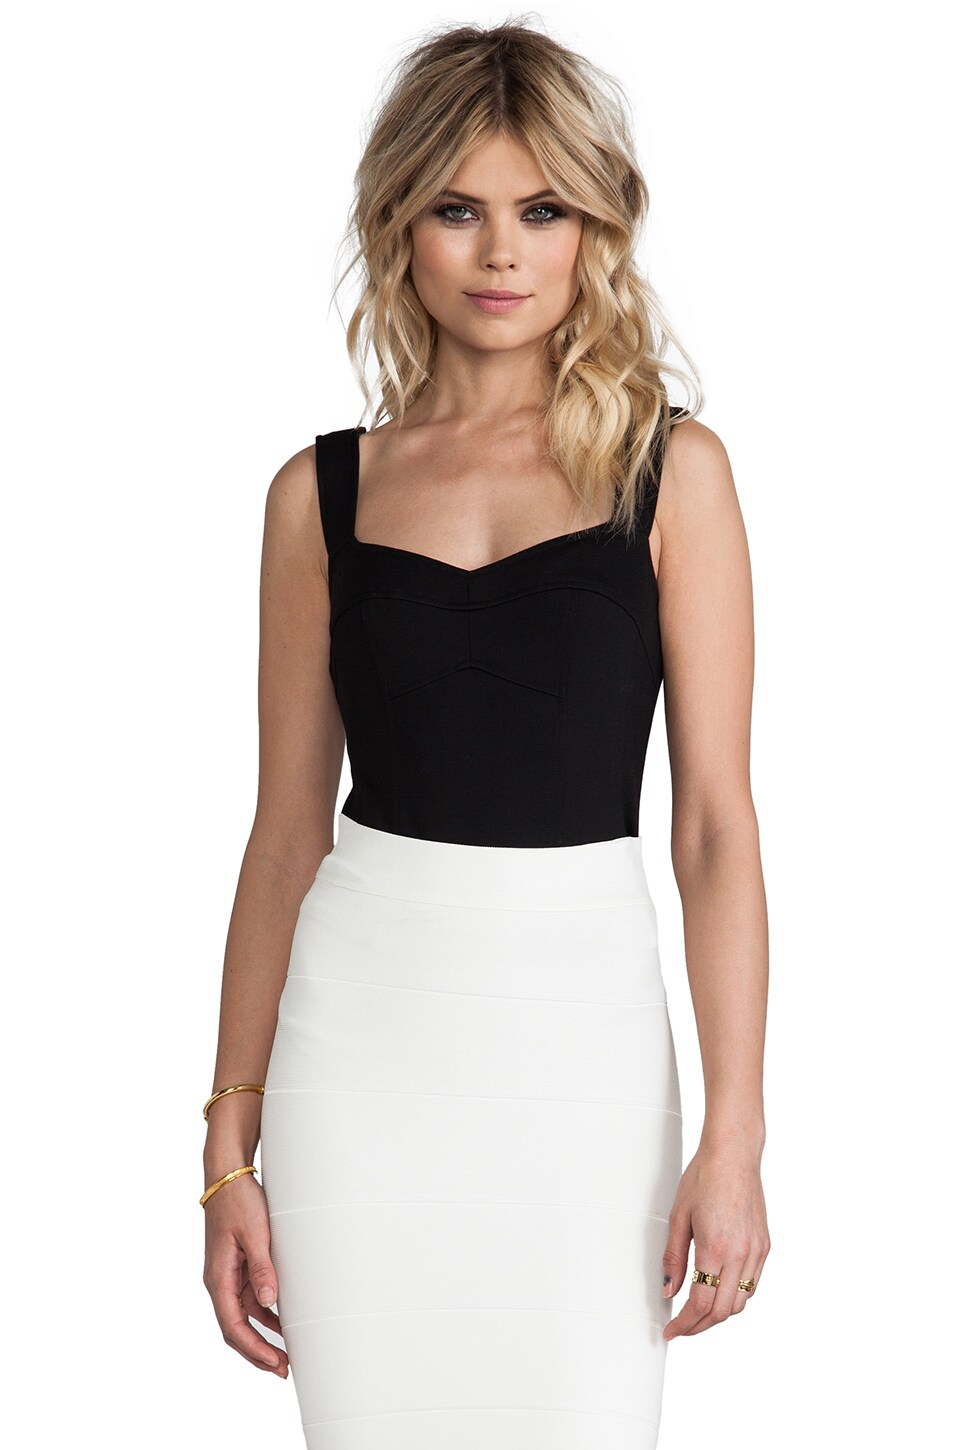 Nanette Lepore Billboard Bustier in Black